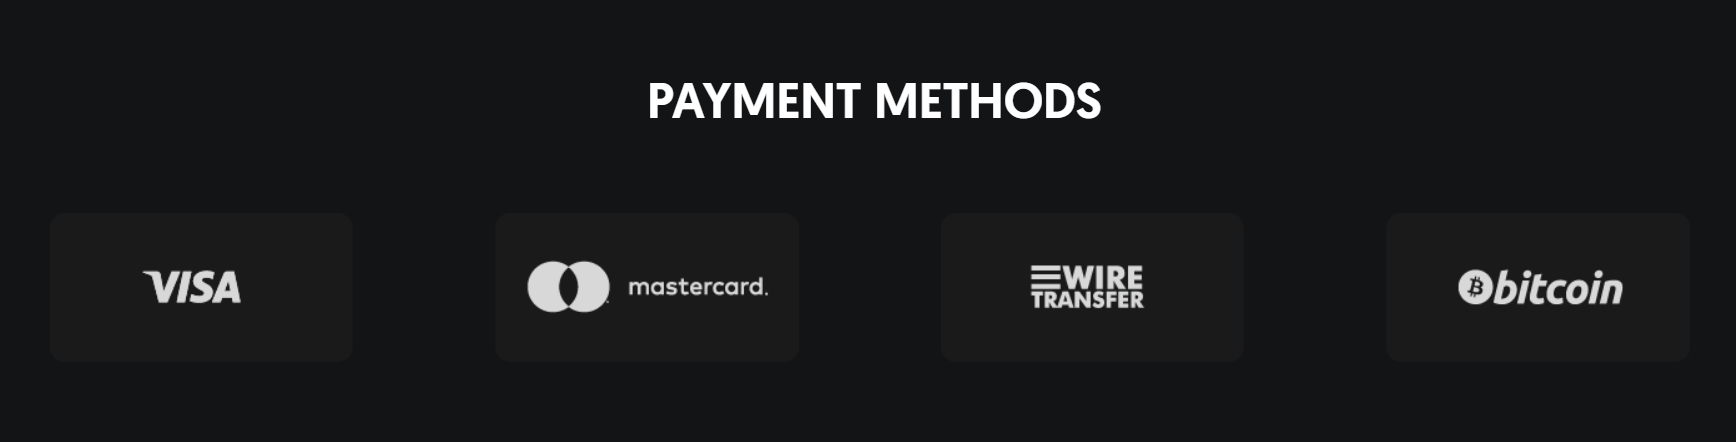 Global Solution payment methods